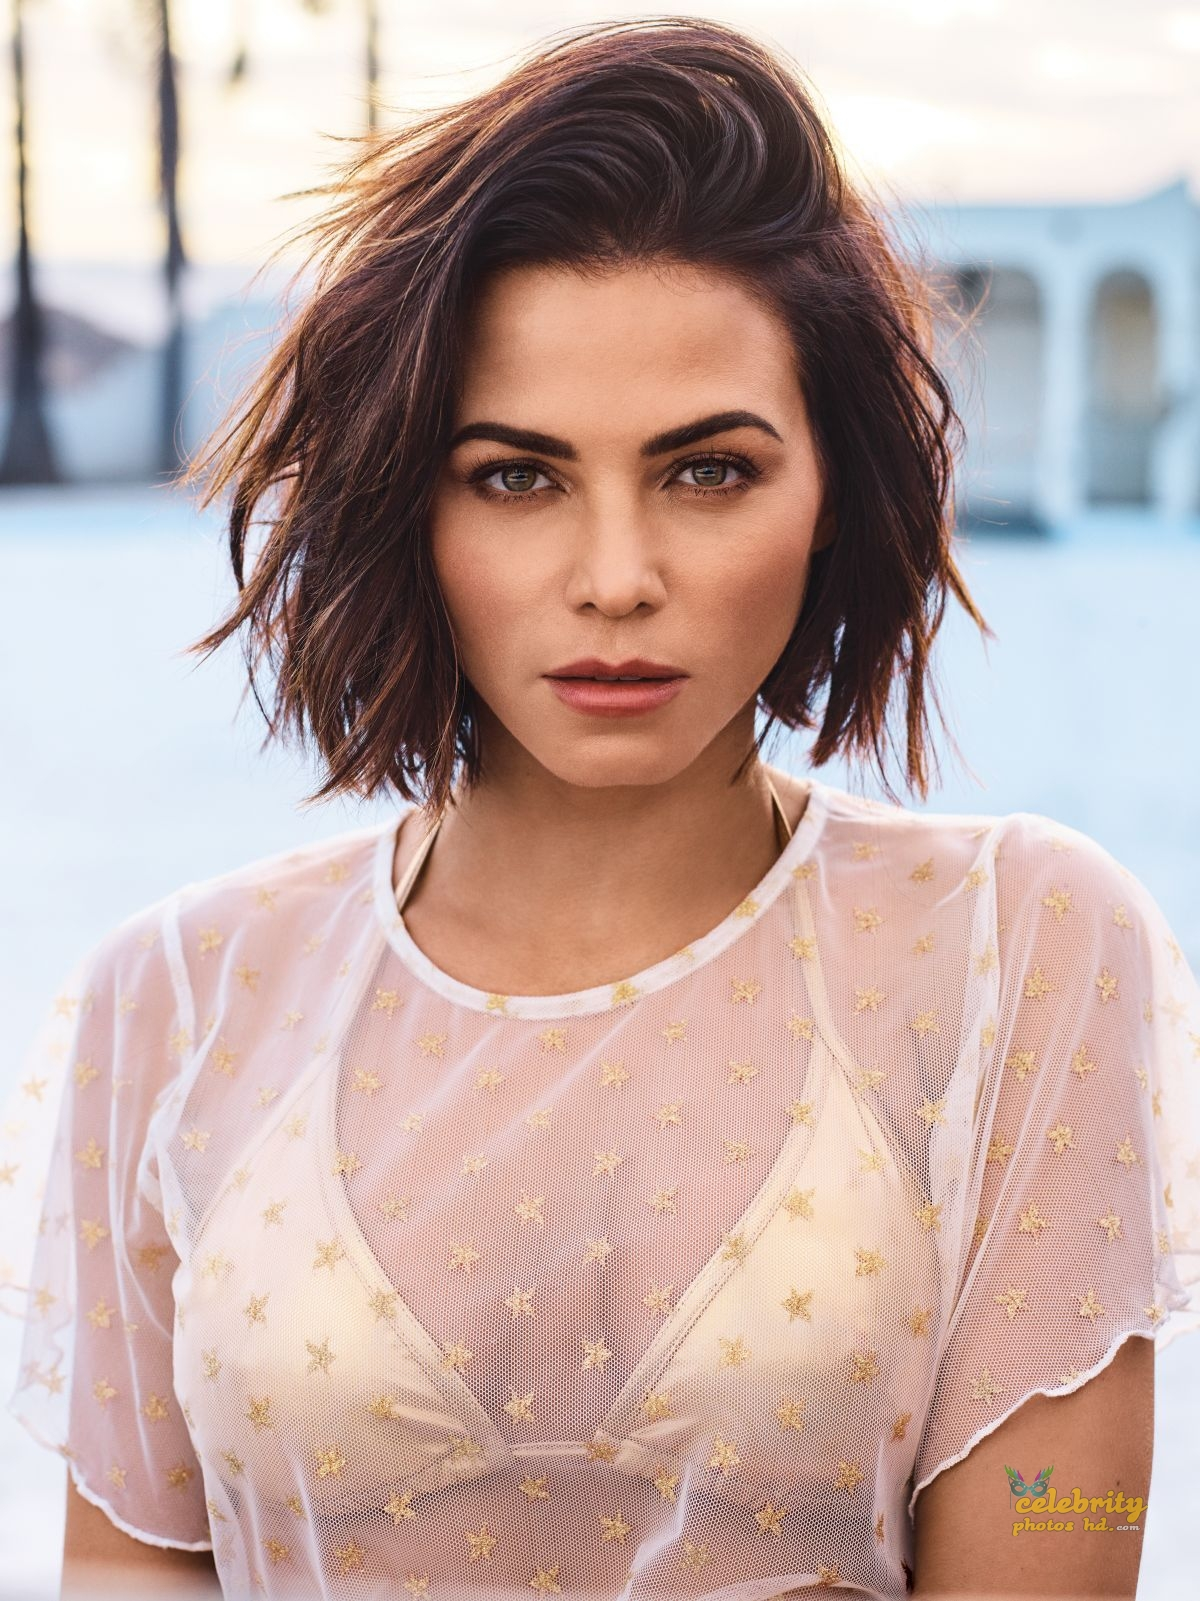 JENNA DEWAN in Health Magazine, (1)